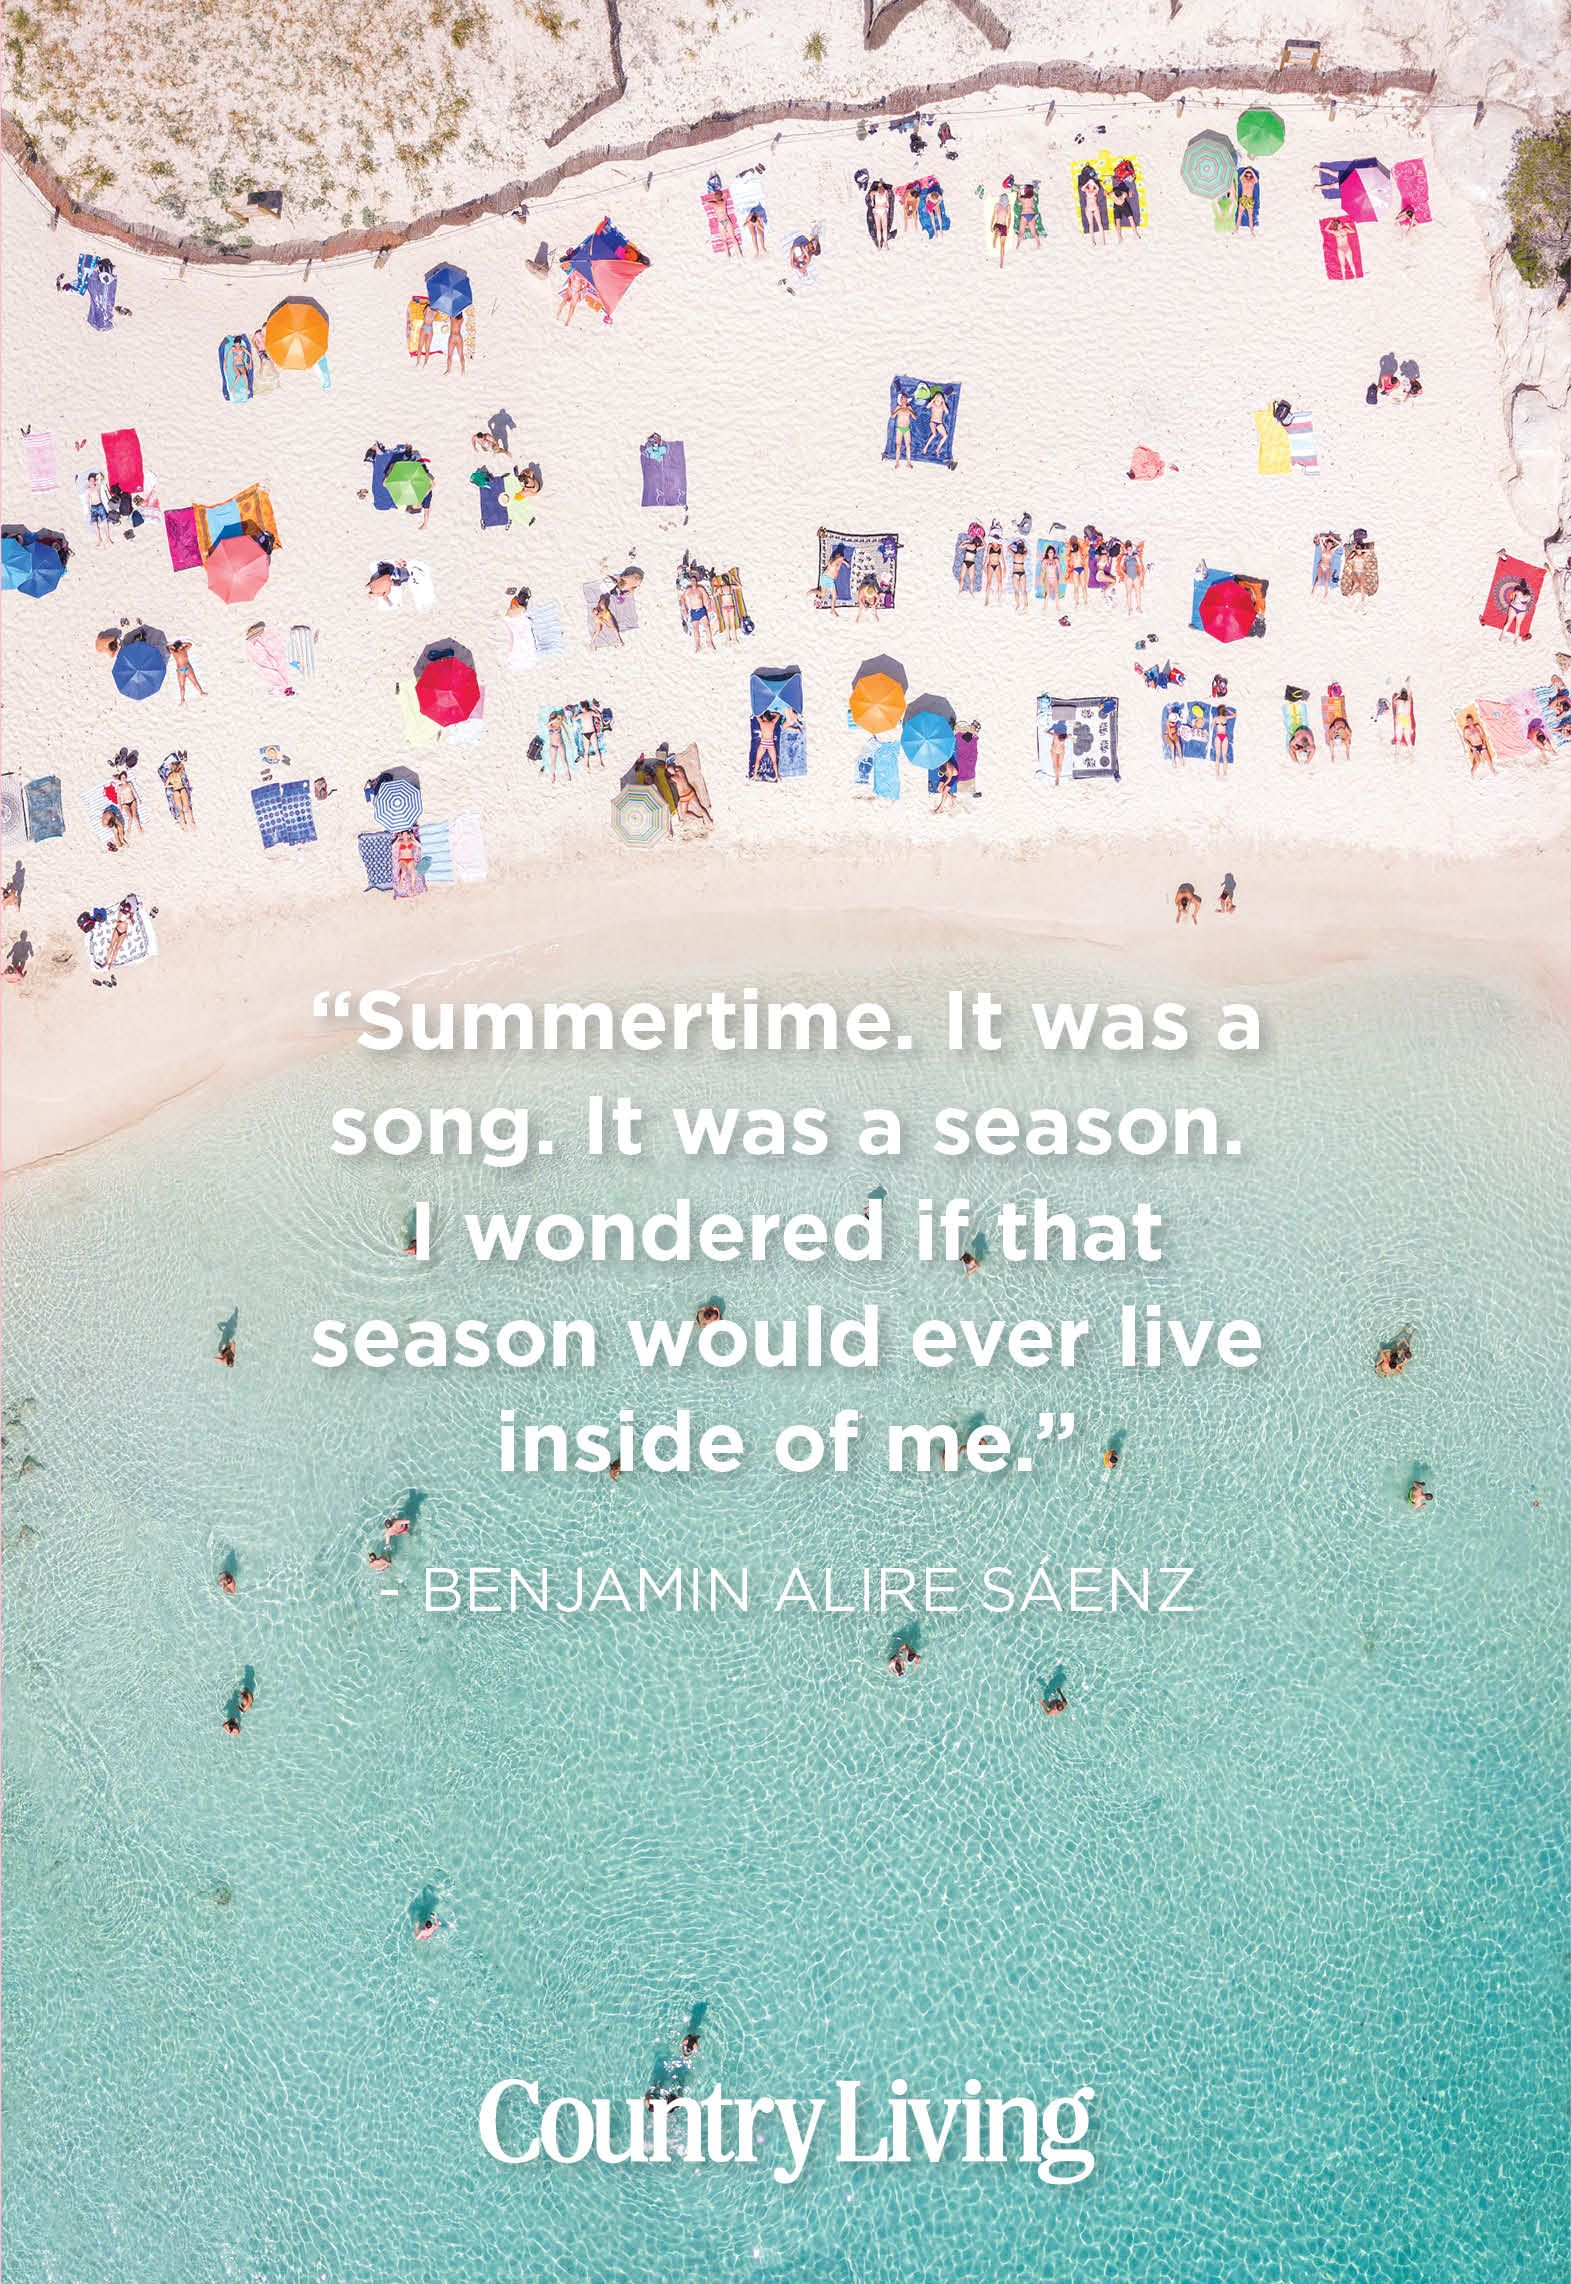 10 Best Summer Quotes - Inspirational Warm-Weather Sayings